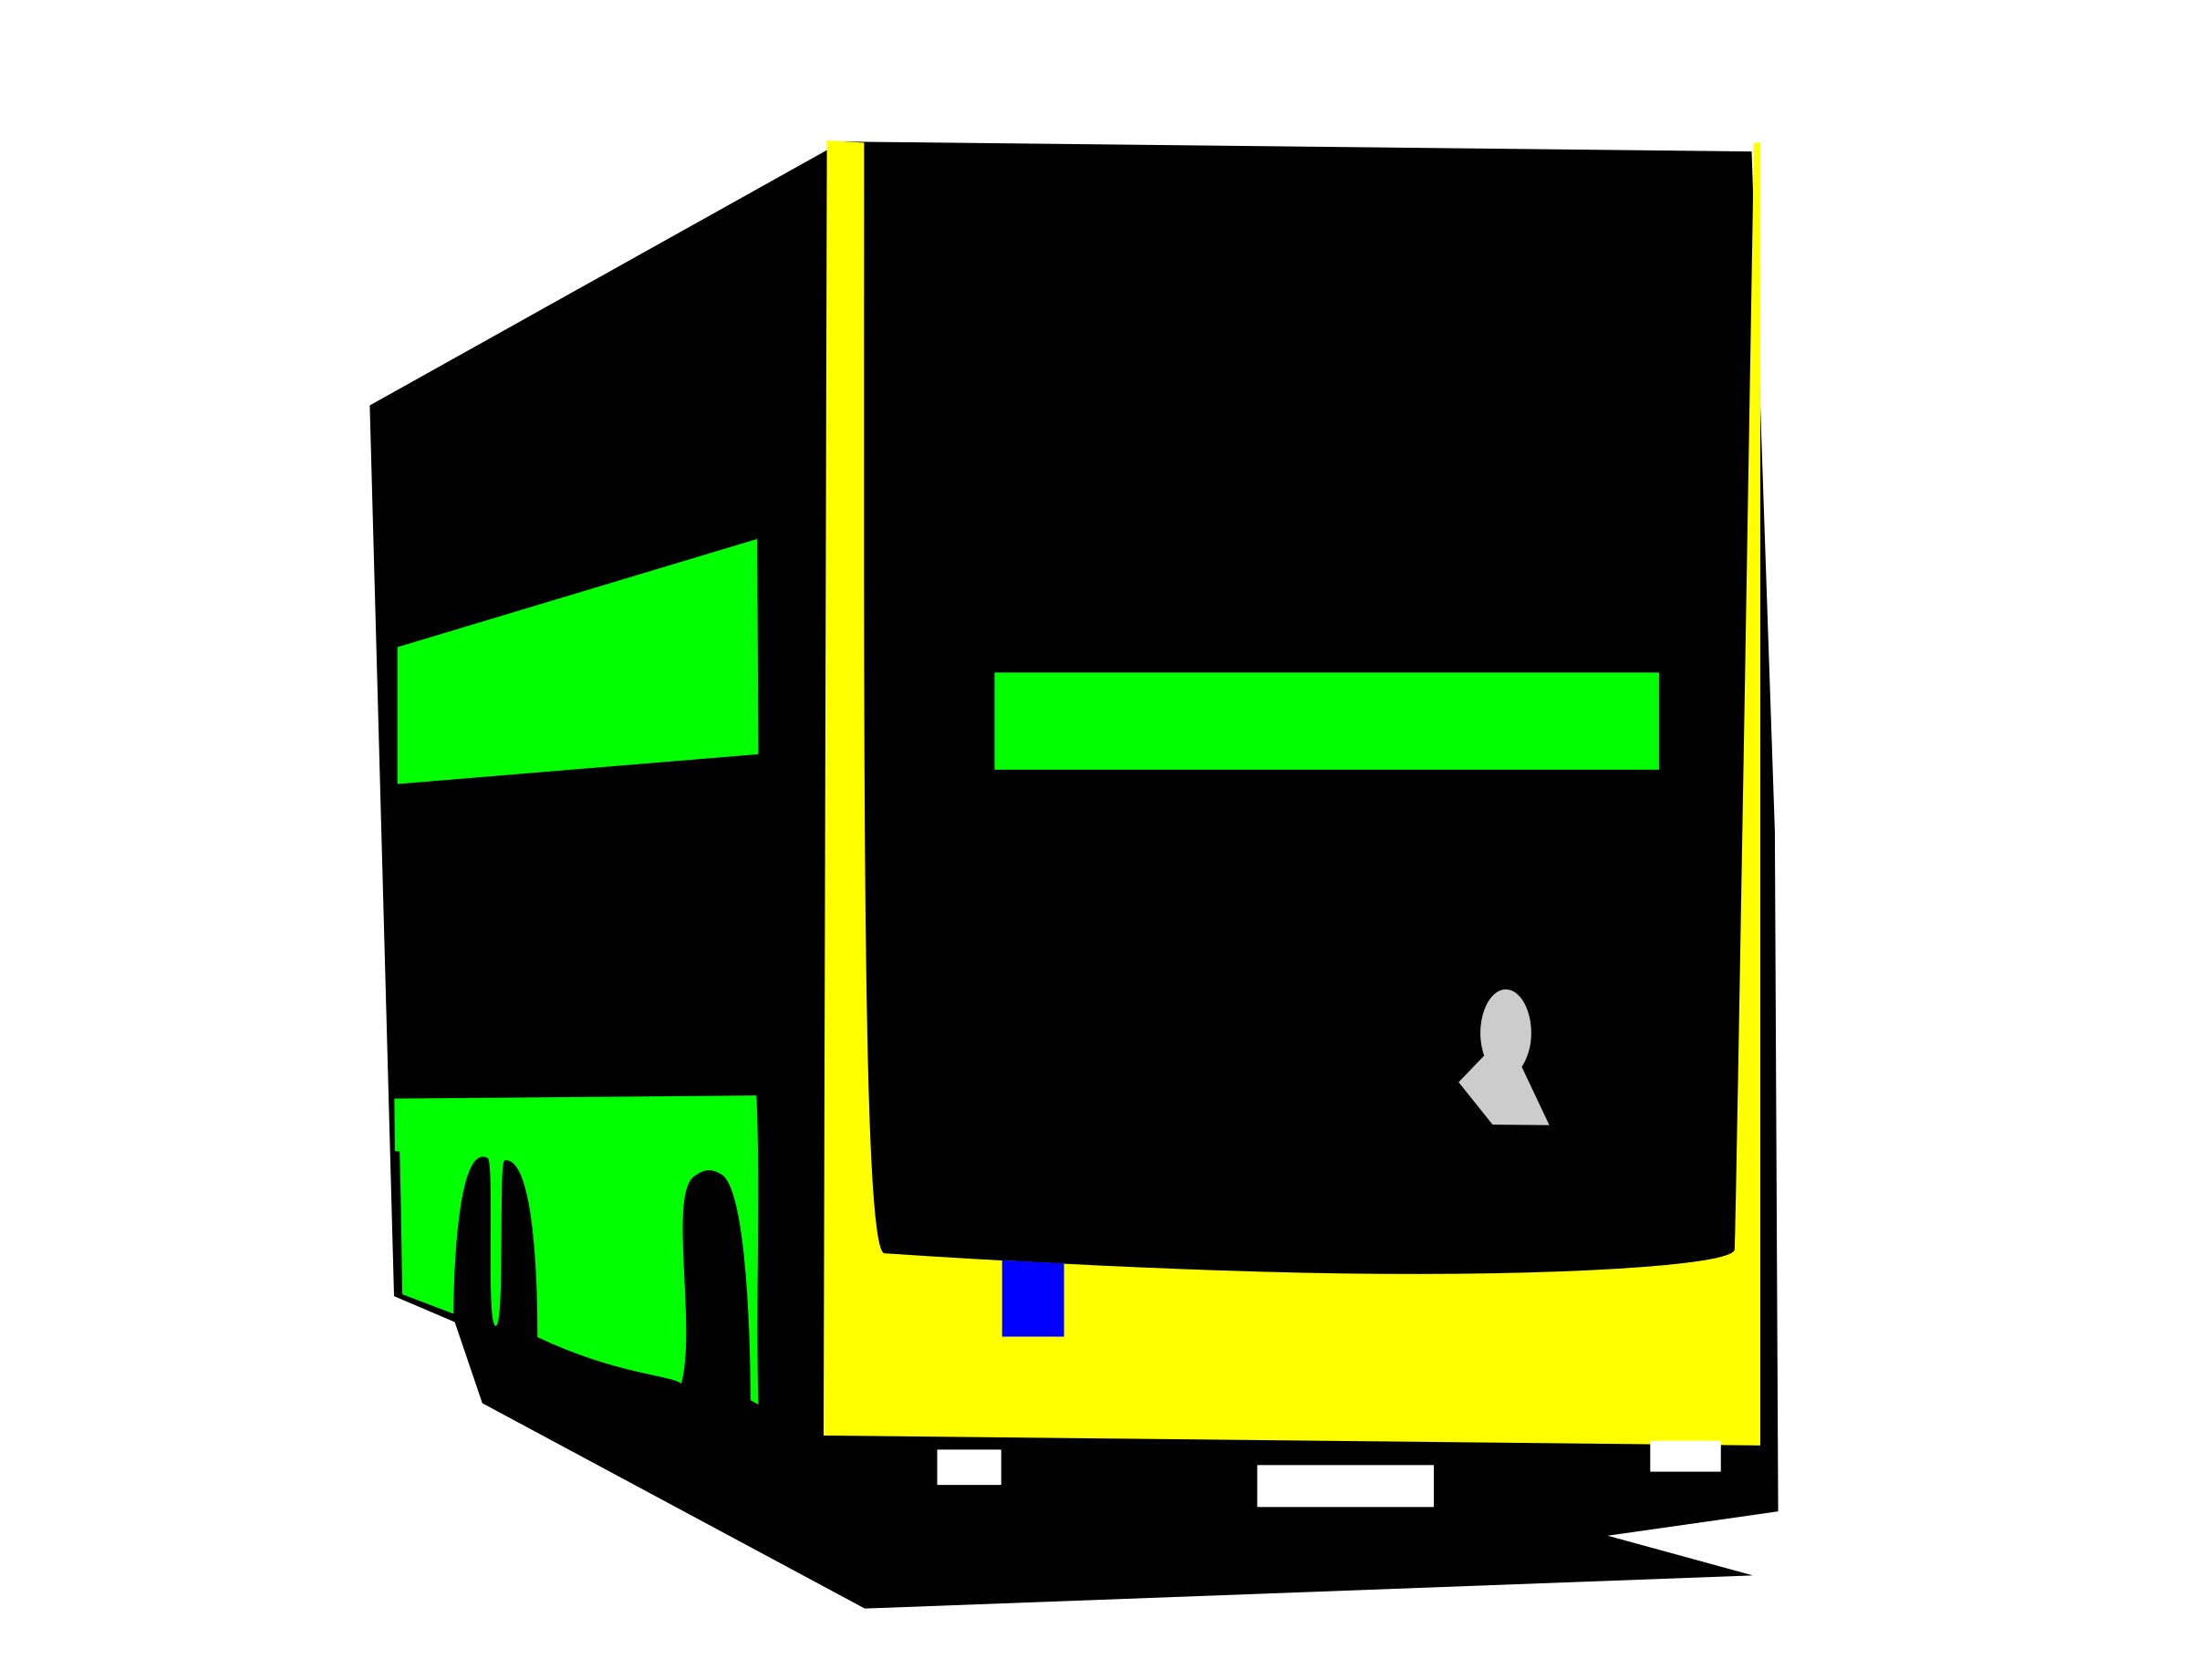 Berliner Doppeldeckerbus by user unknown